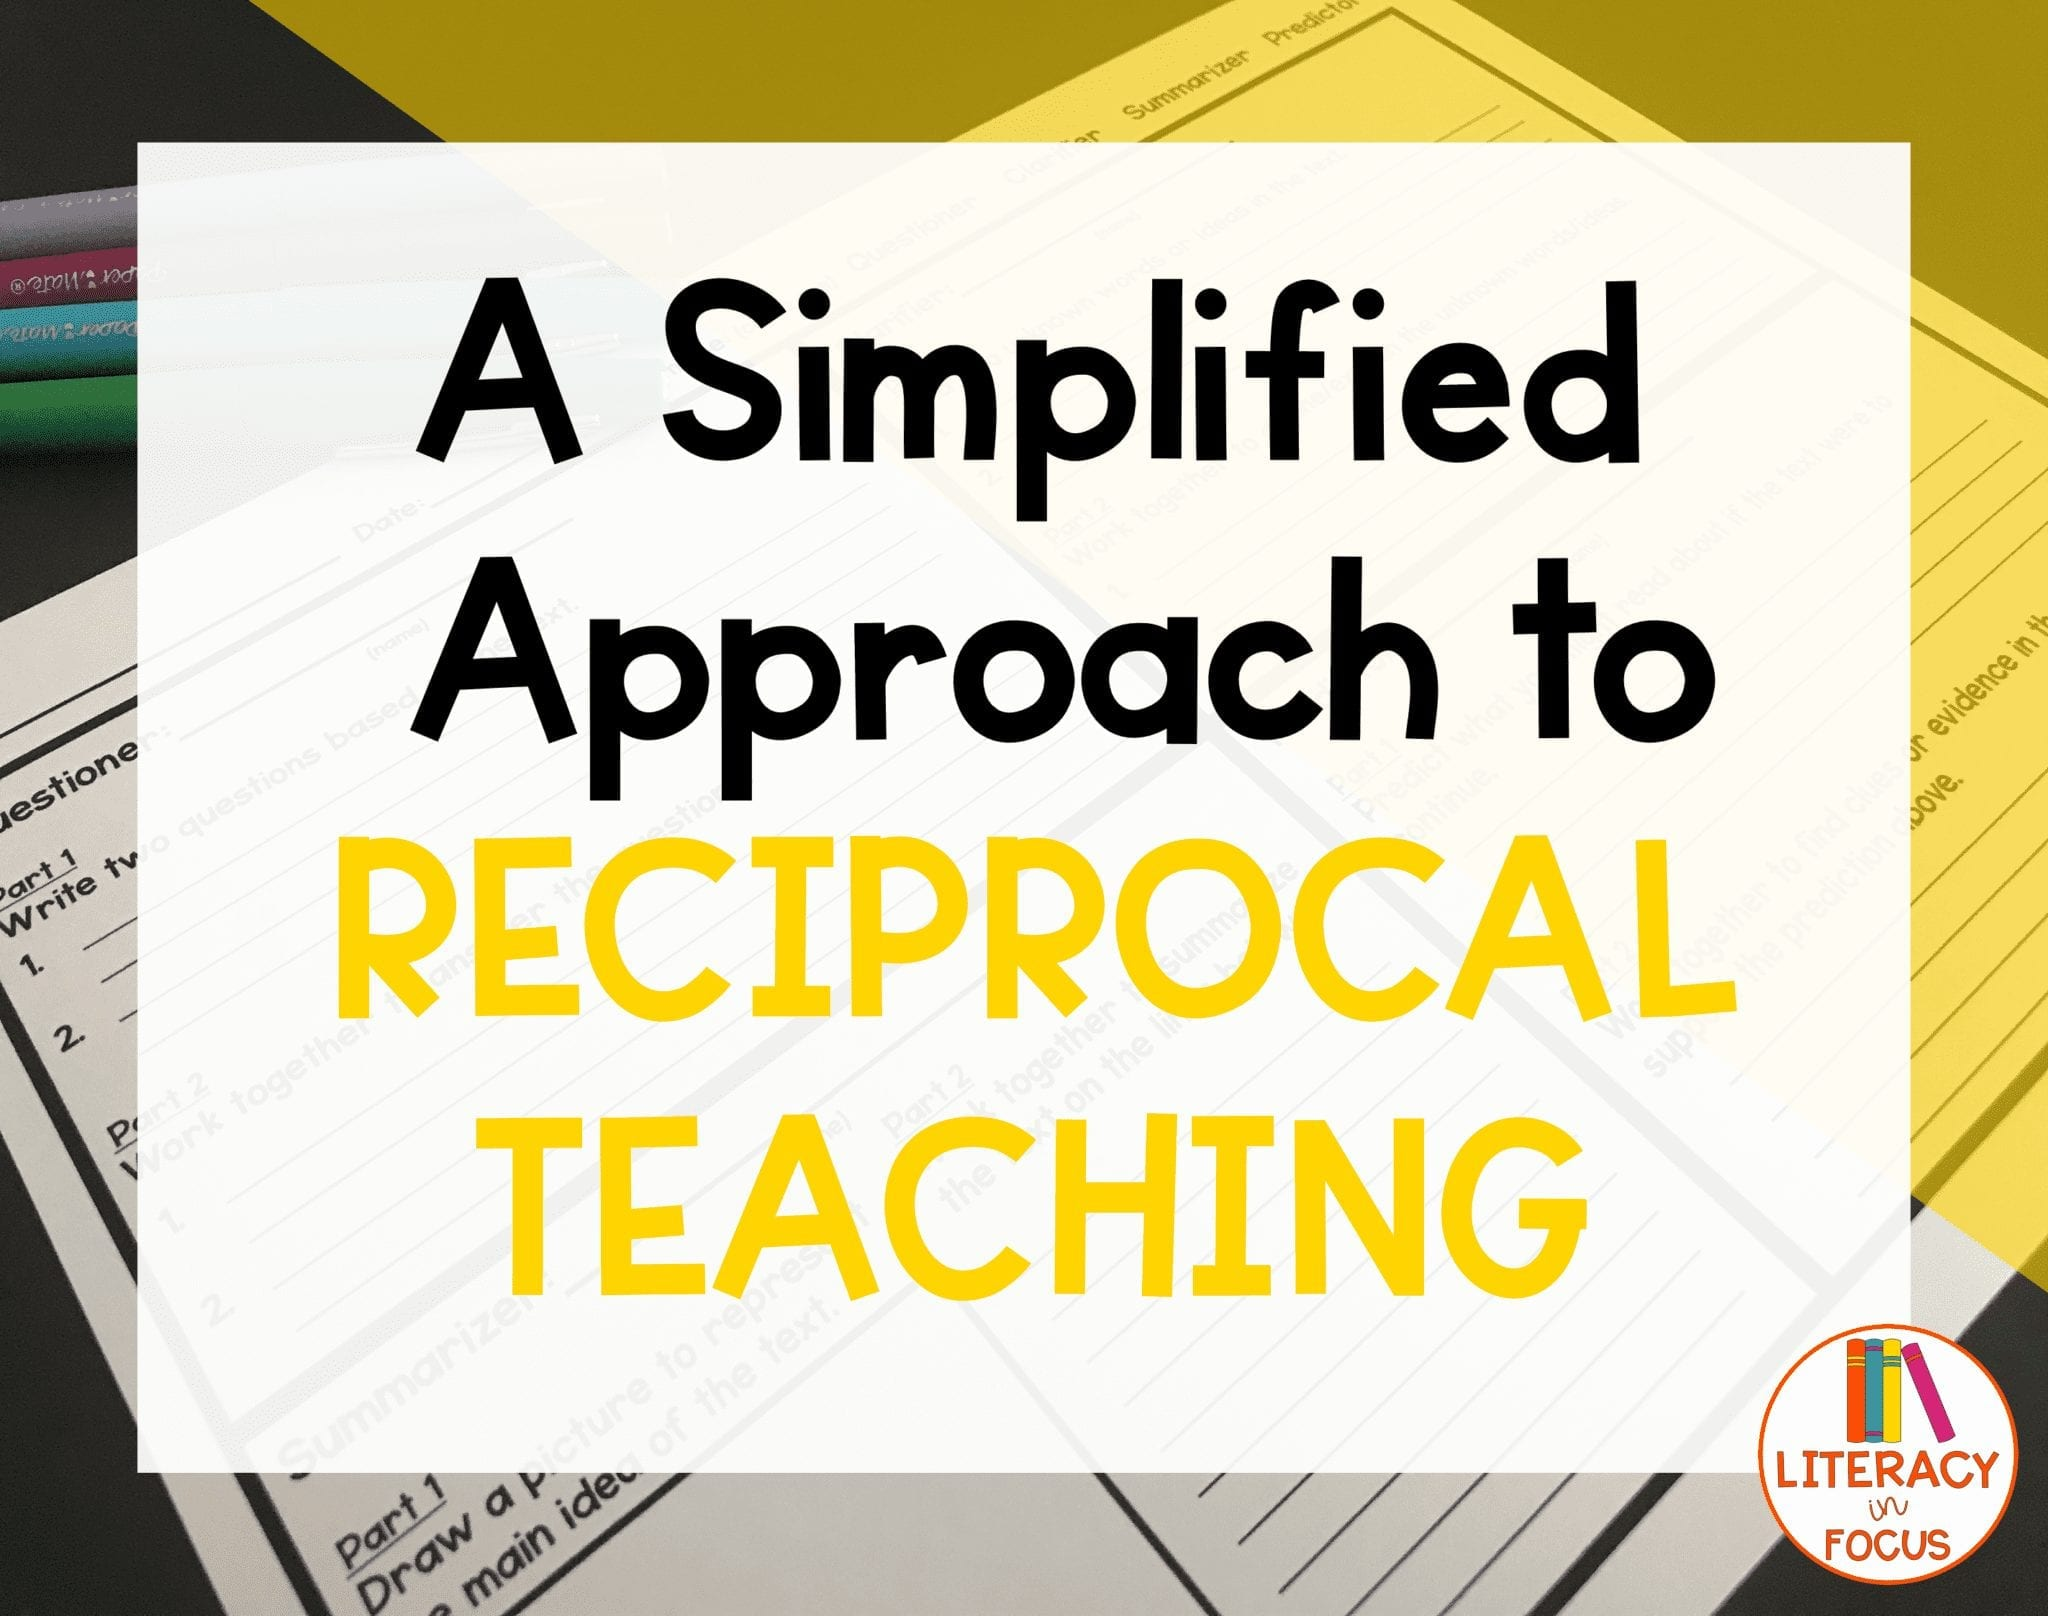 Reciprocal Teaching Title Image